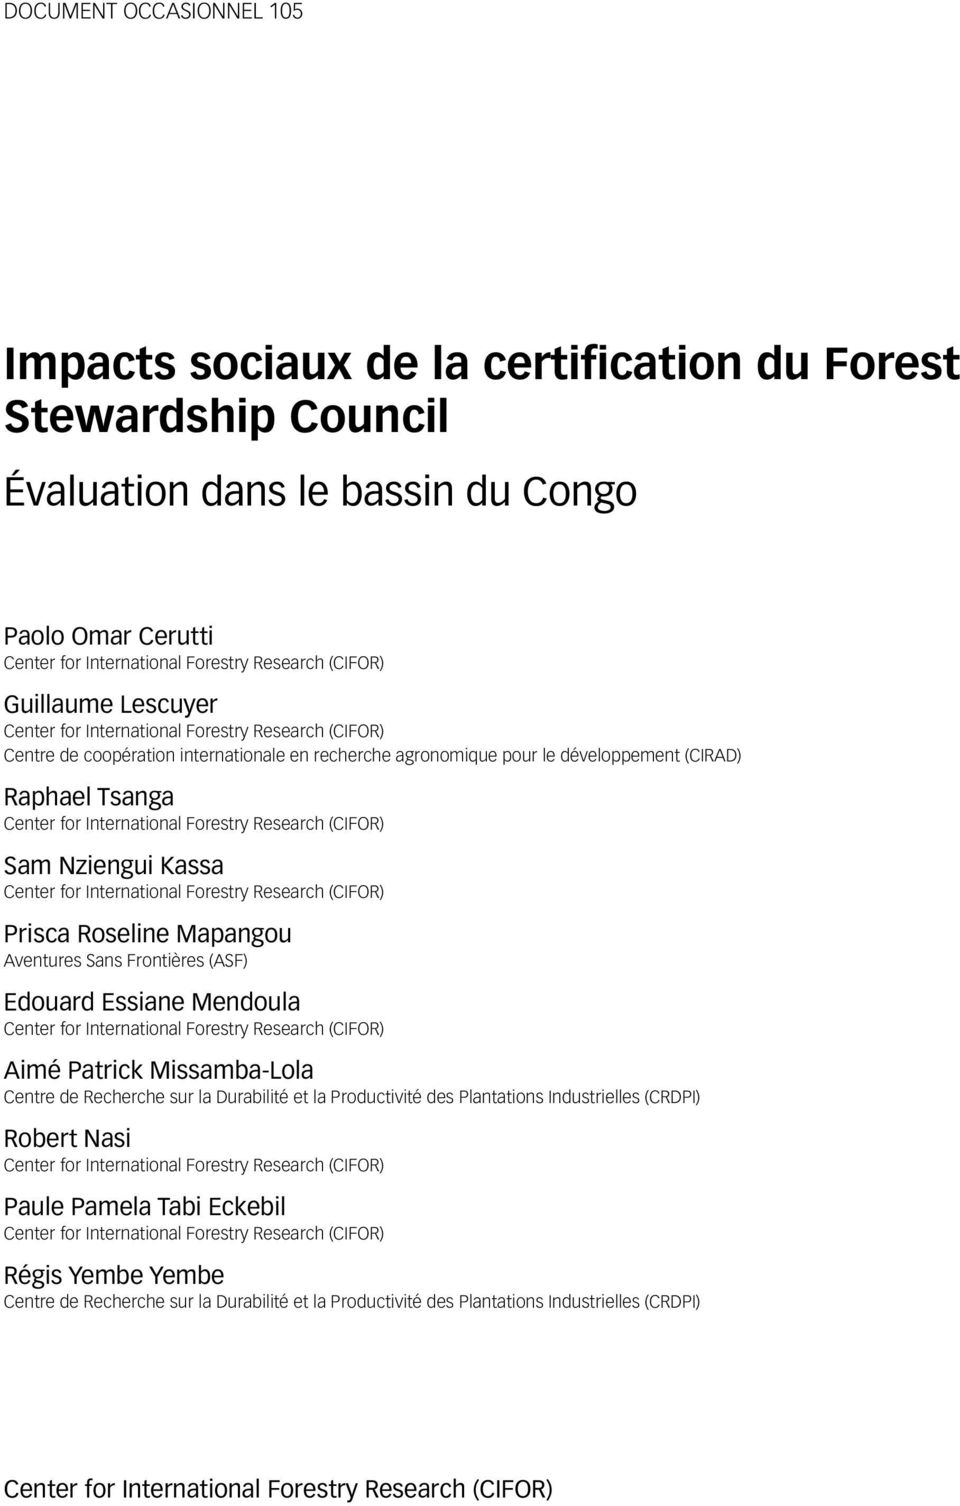 International Forestry Research (CIFOR) Sam Nziengui Kassa Center for International Forestry Research (CIFOR) Prisca Roseline Mapangou Aventures Sans Frontières (ASF) Edouard Essiane Mendoula Center